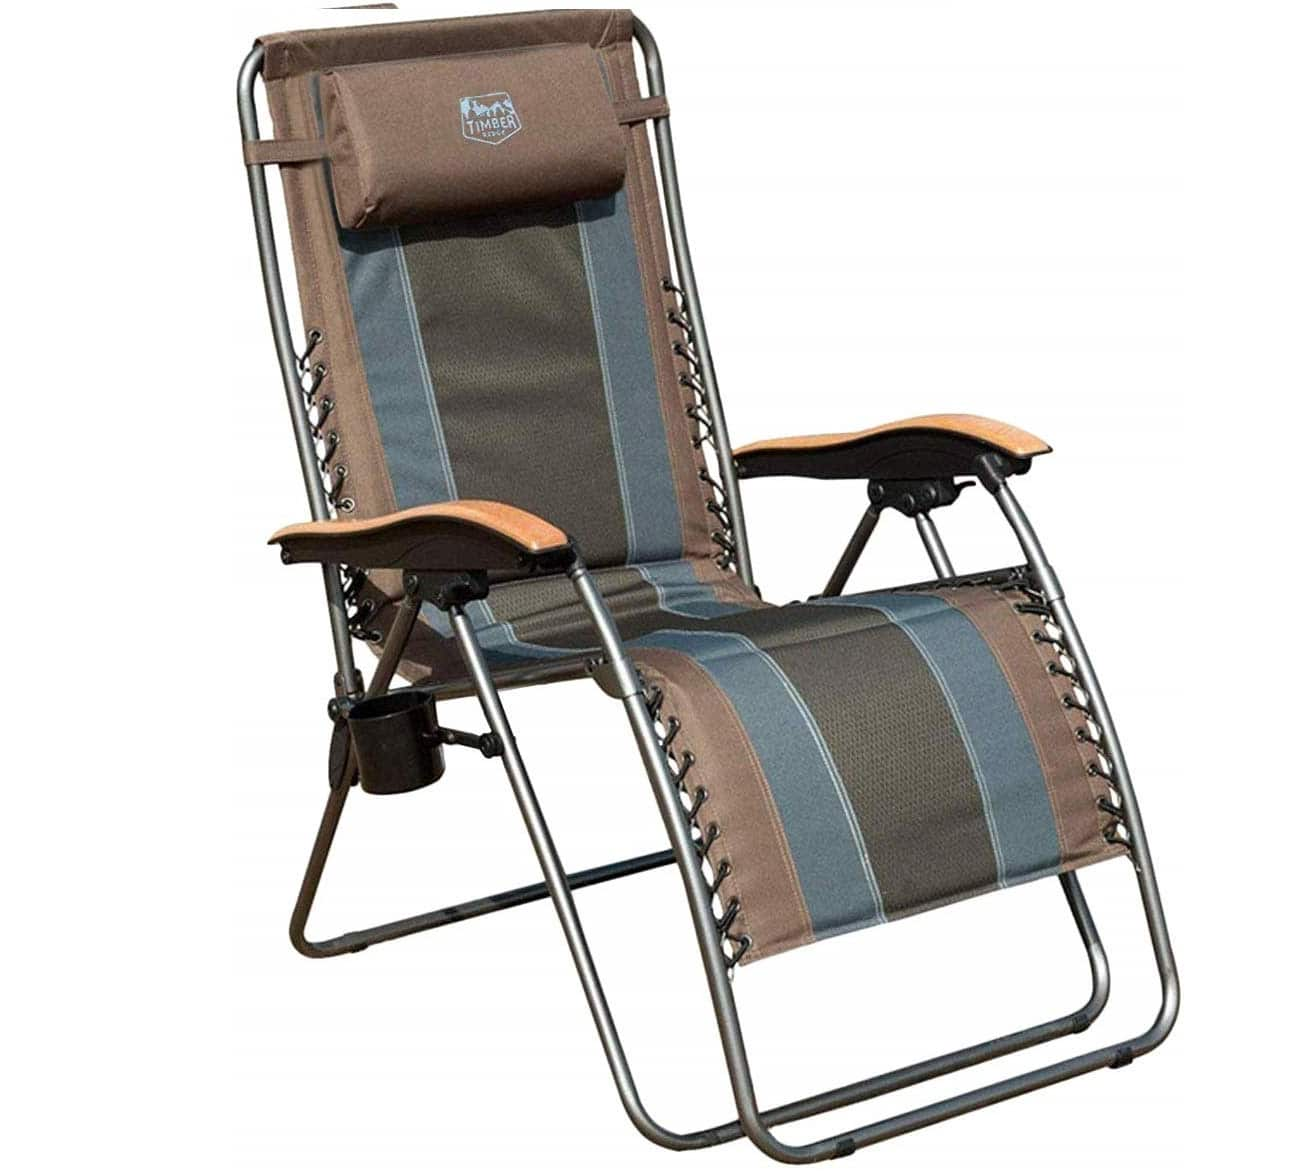 2. Timber Ridge Outdoor Folding Lounge Chair with Over Siz Recliner Padded and Cup Holder - Zero Gravity Adjustable Beach Lounge Chair